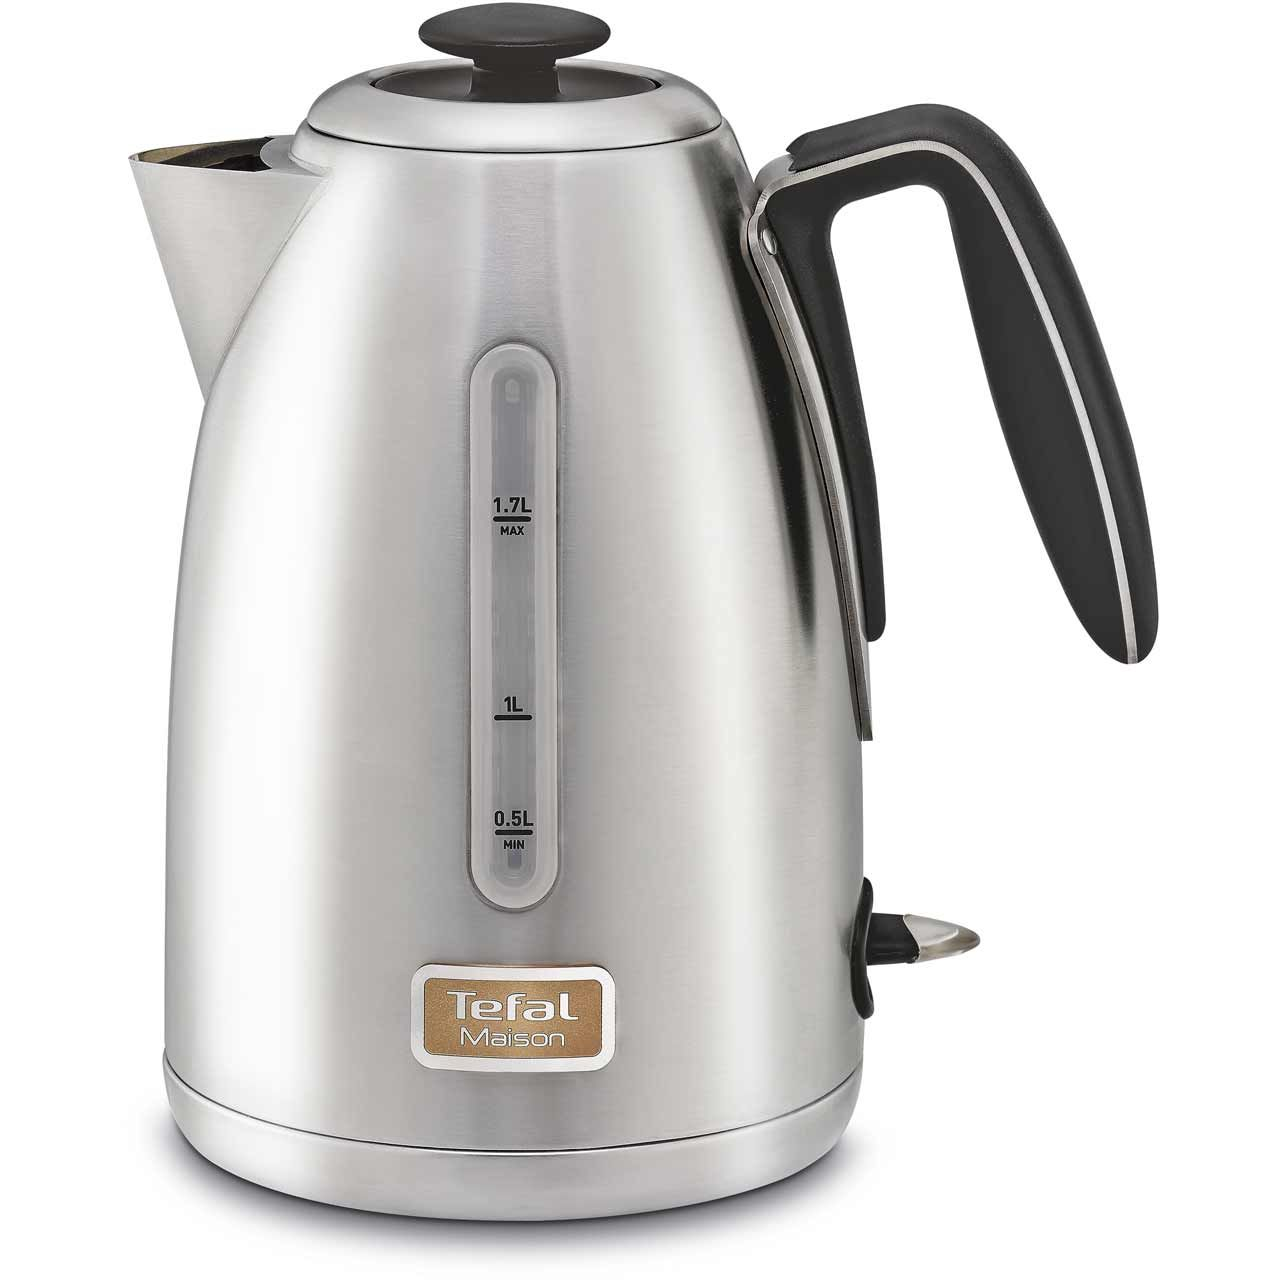 ki2608uk bk   tefal maison kettle   ao com    small kitchen appliancessmall     ki2608uk bk   tefal maison kettle   ao com   kitchen   pinterest      rh   pinterest com